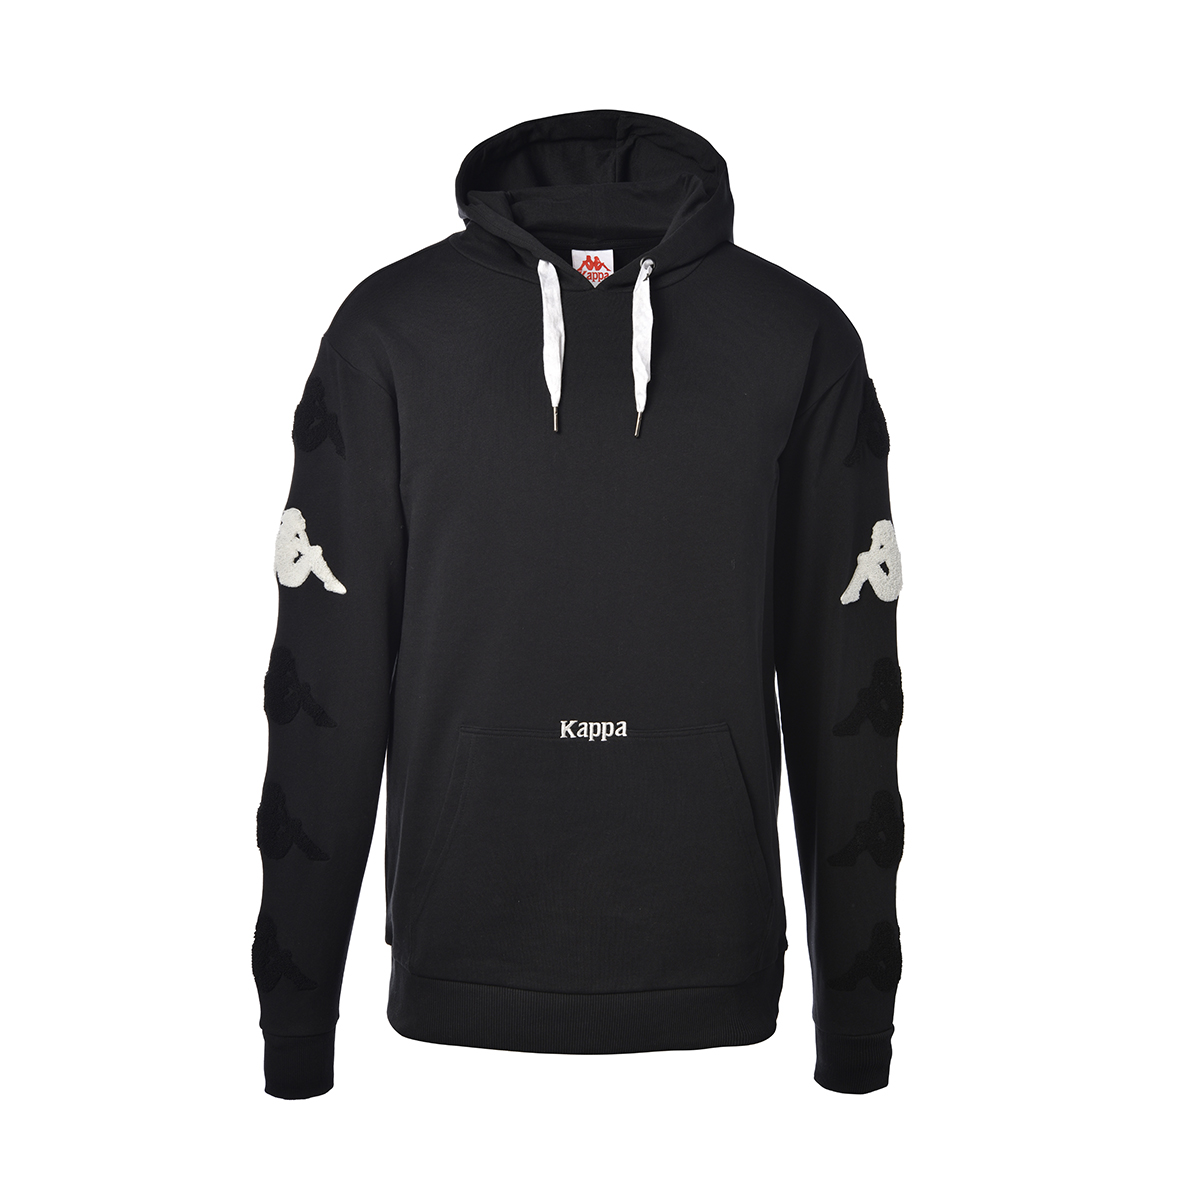 Hoodie Charice Authentic